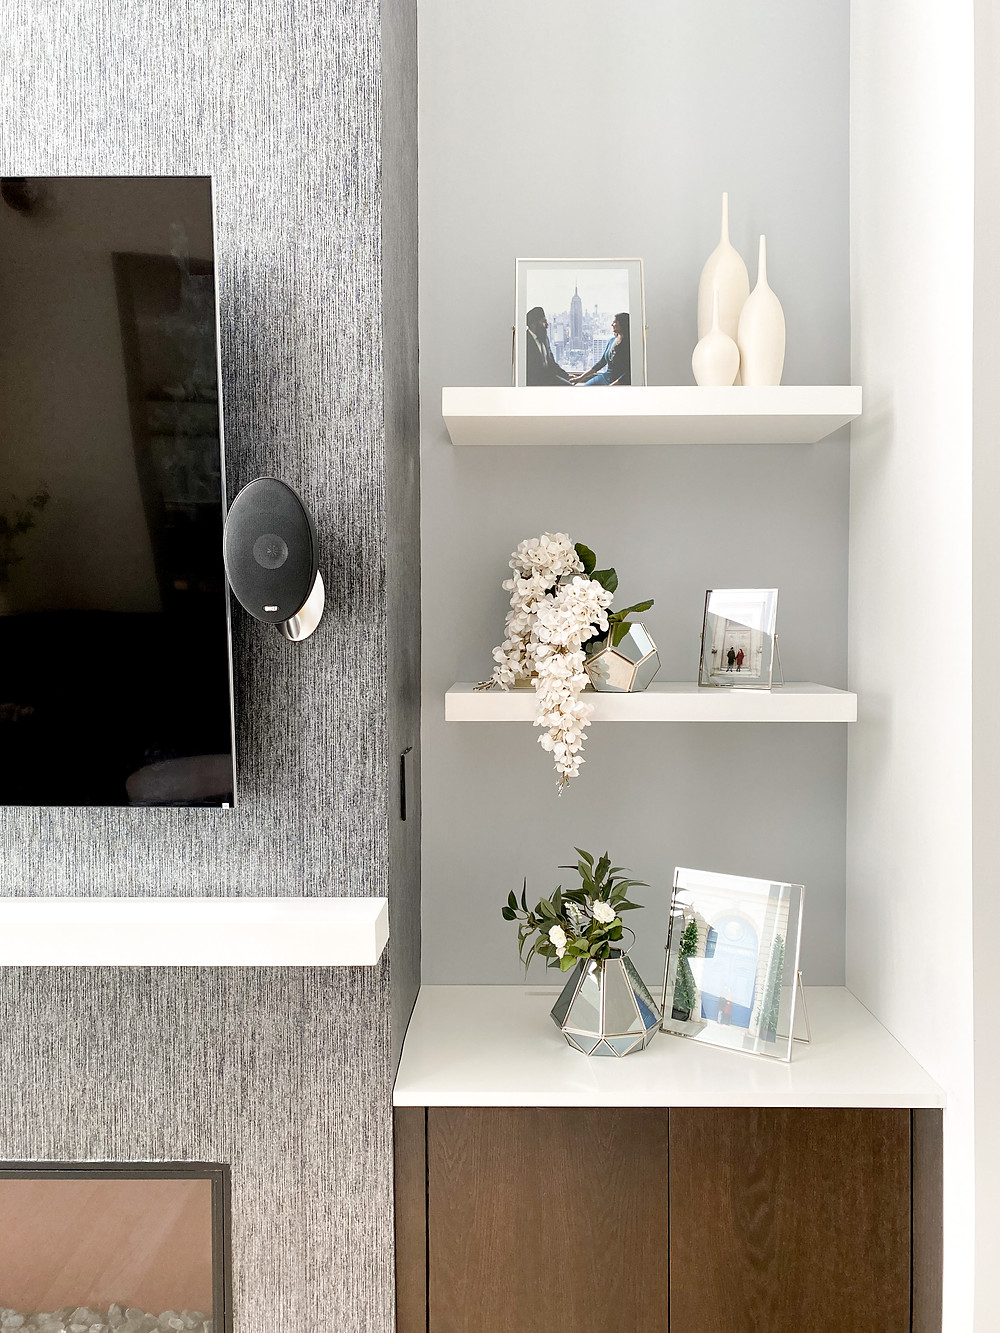 Easy Breezy Modern Minimalist Shelf Styling For The Summer Months #summerstyle #homedecor